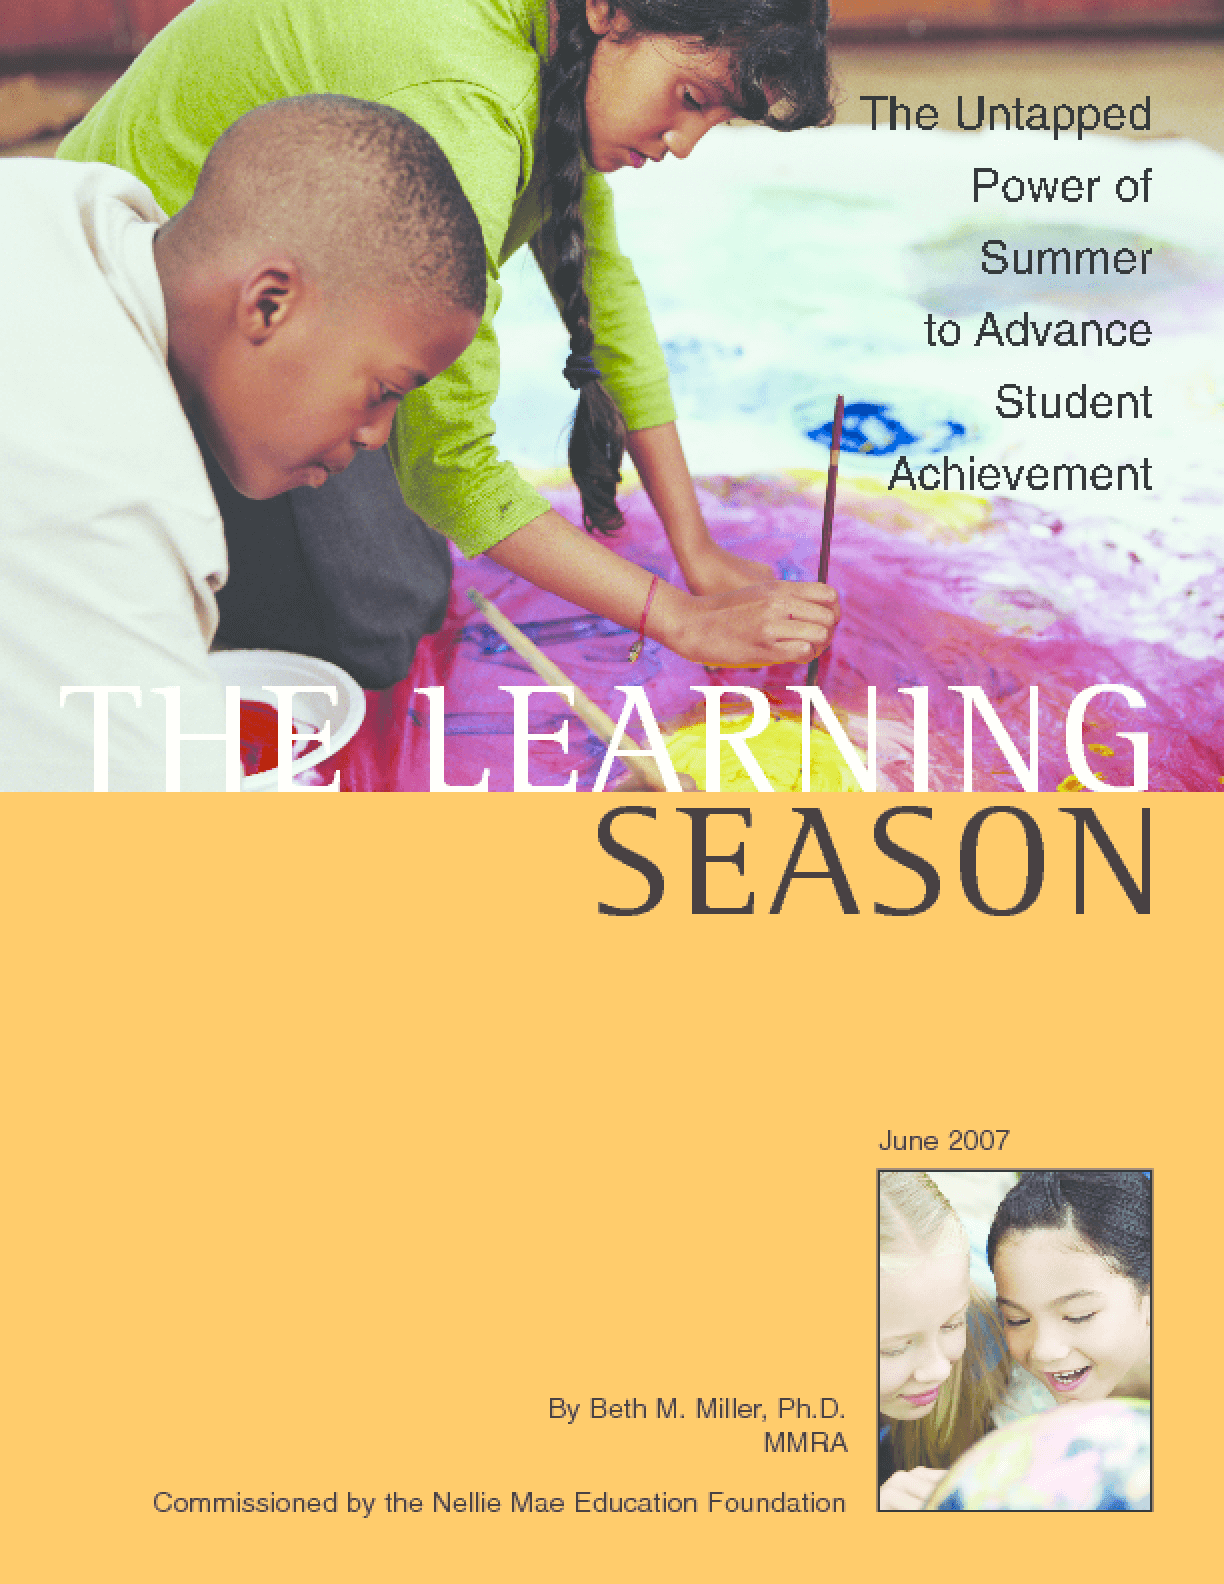 The Learning Season: The Untapped Power of Summer to Advance Student Achievement